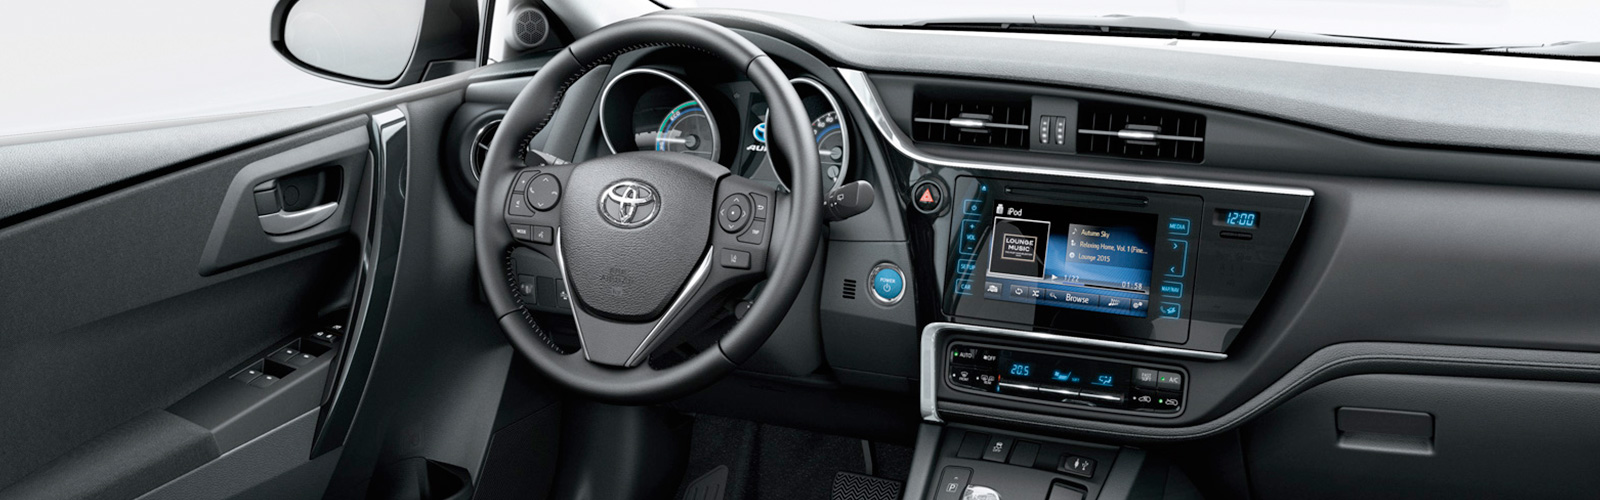 Interior del nuevo Toyota Auris Touring Sports